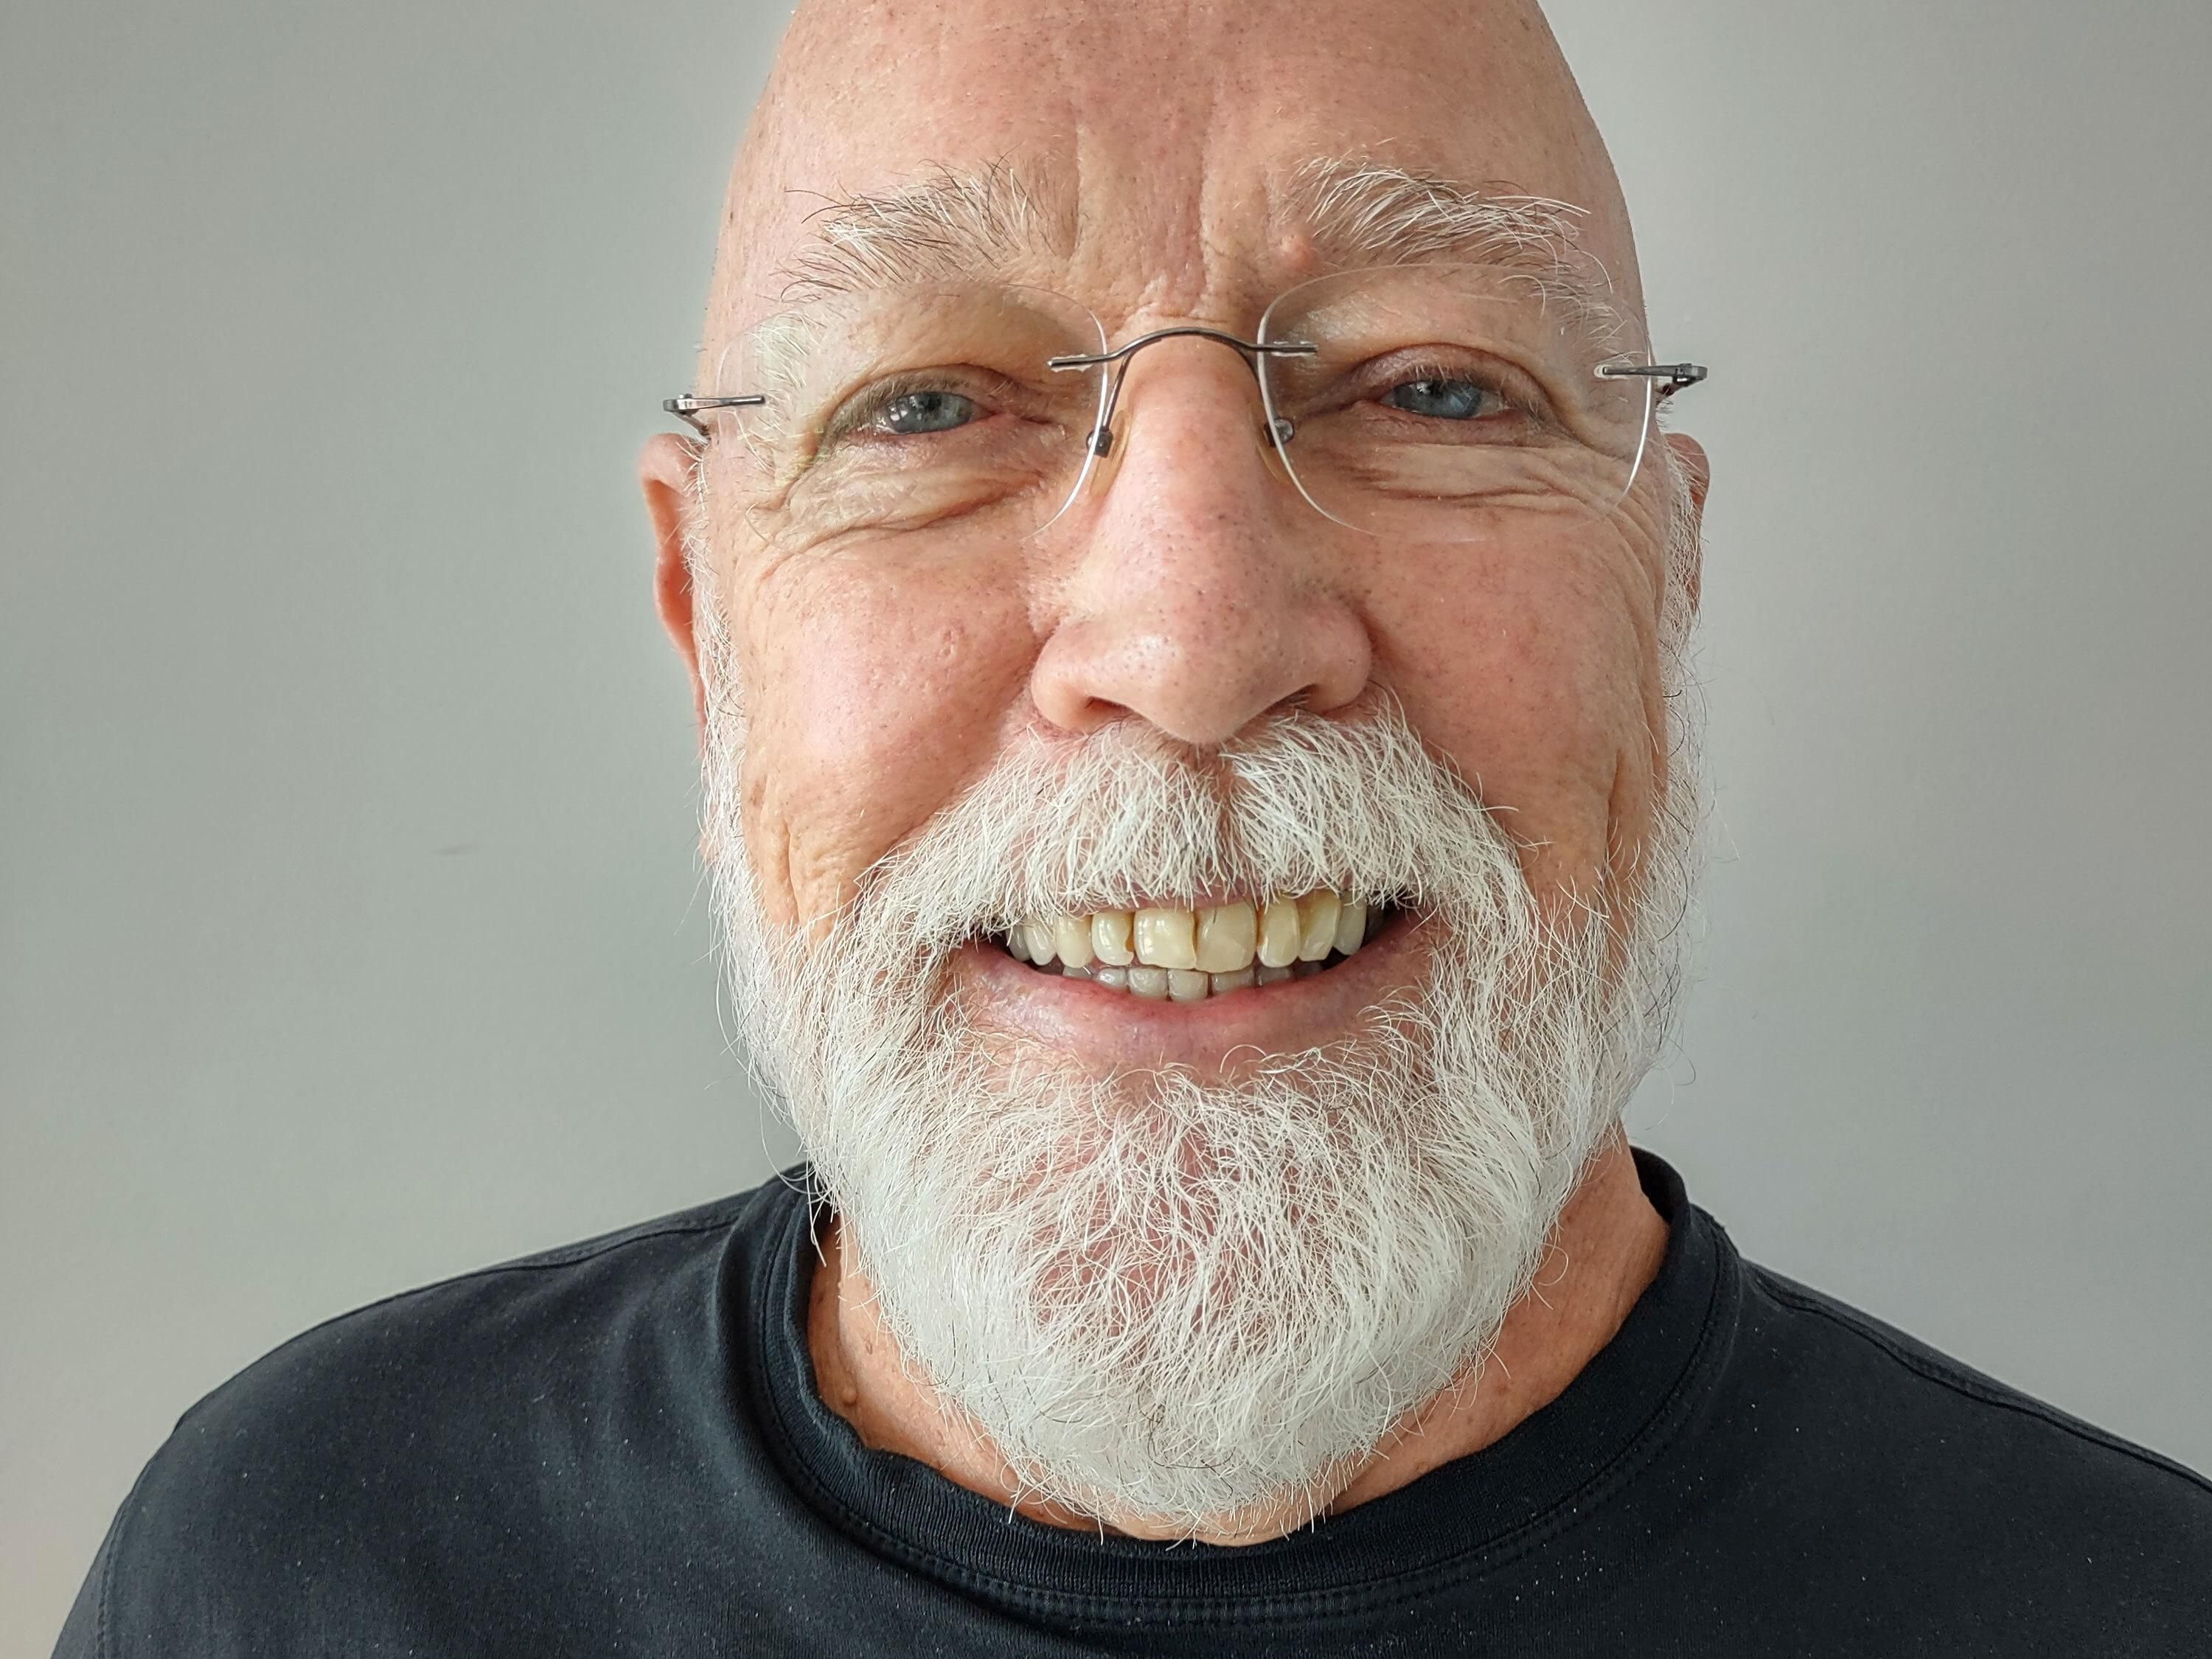 A smiling man with a white beard.